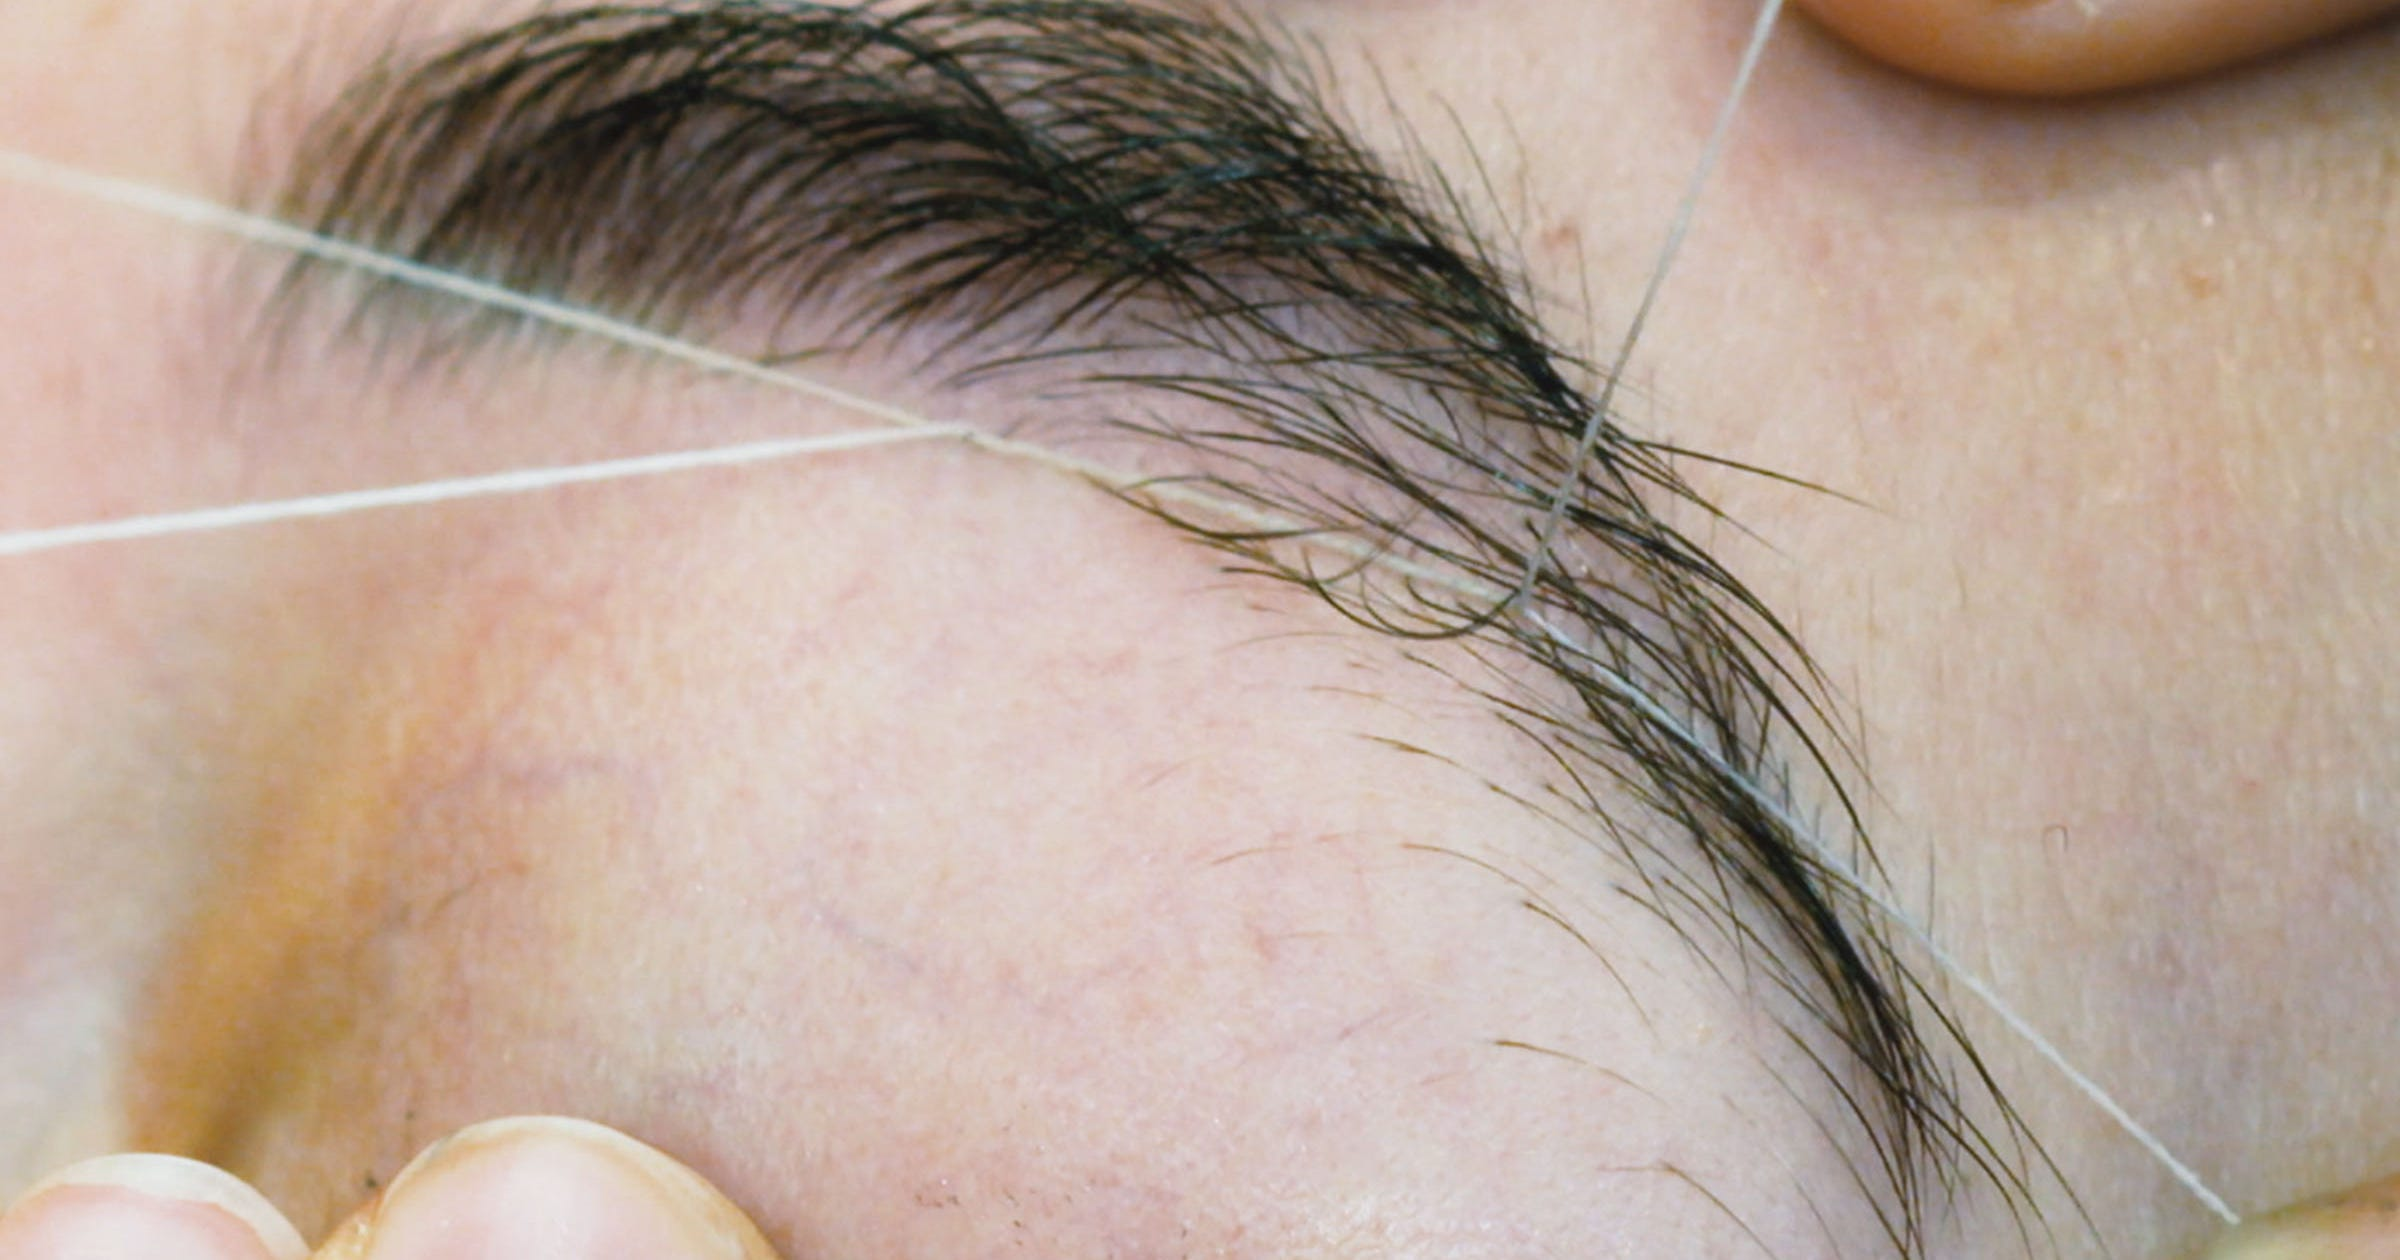 Eyebrow Threading Hair Removal Slow Motion Video